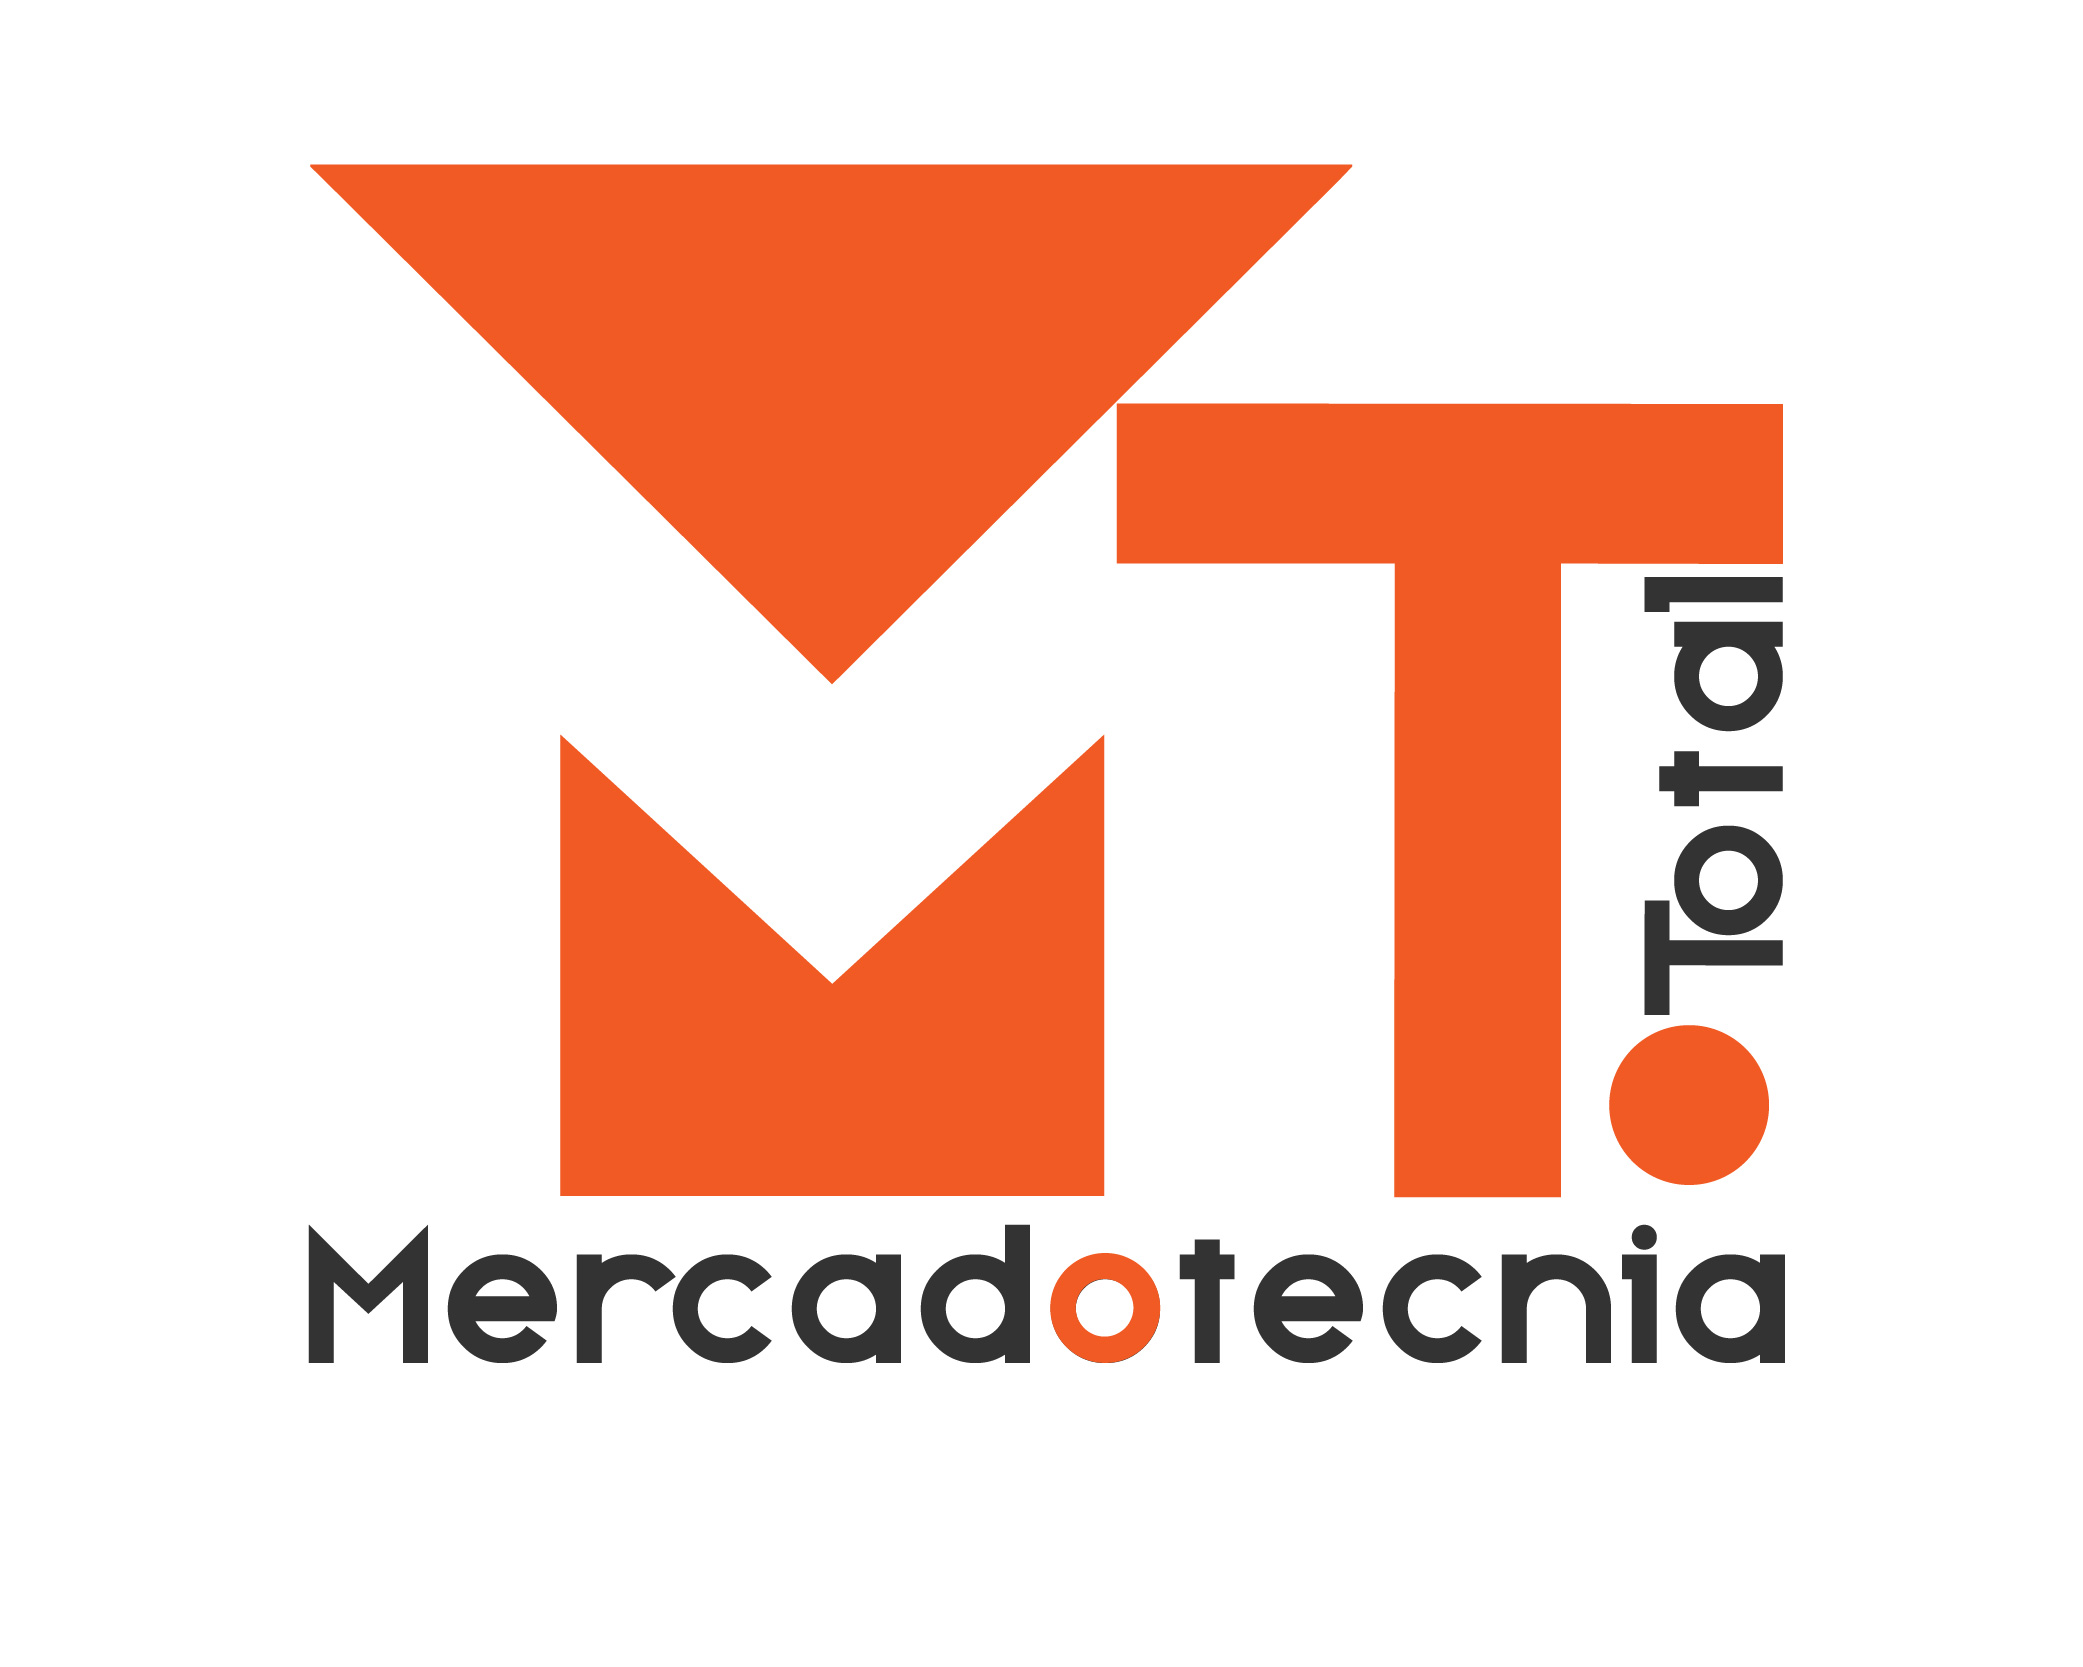 Mercadotecnia total